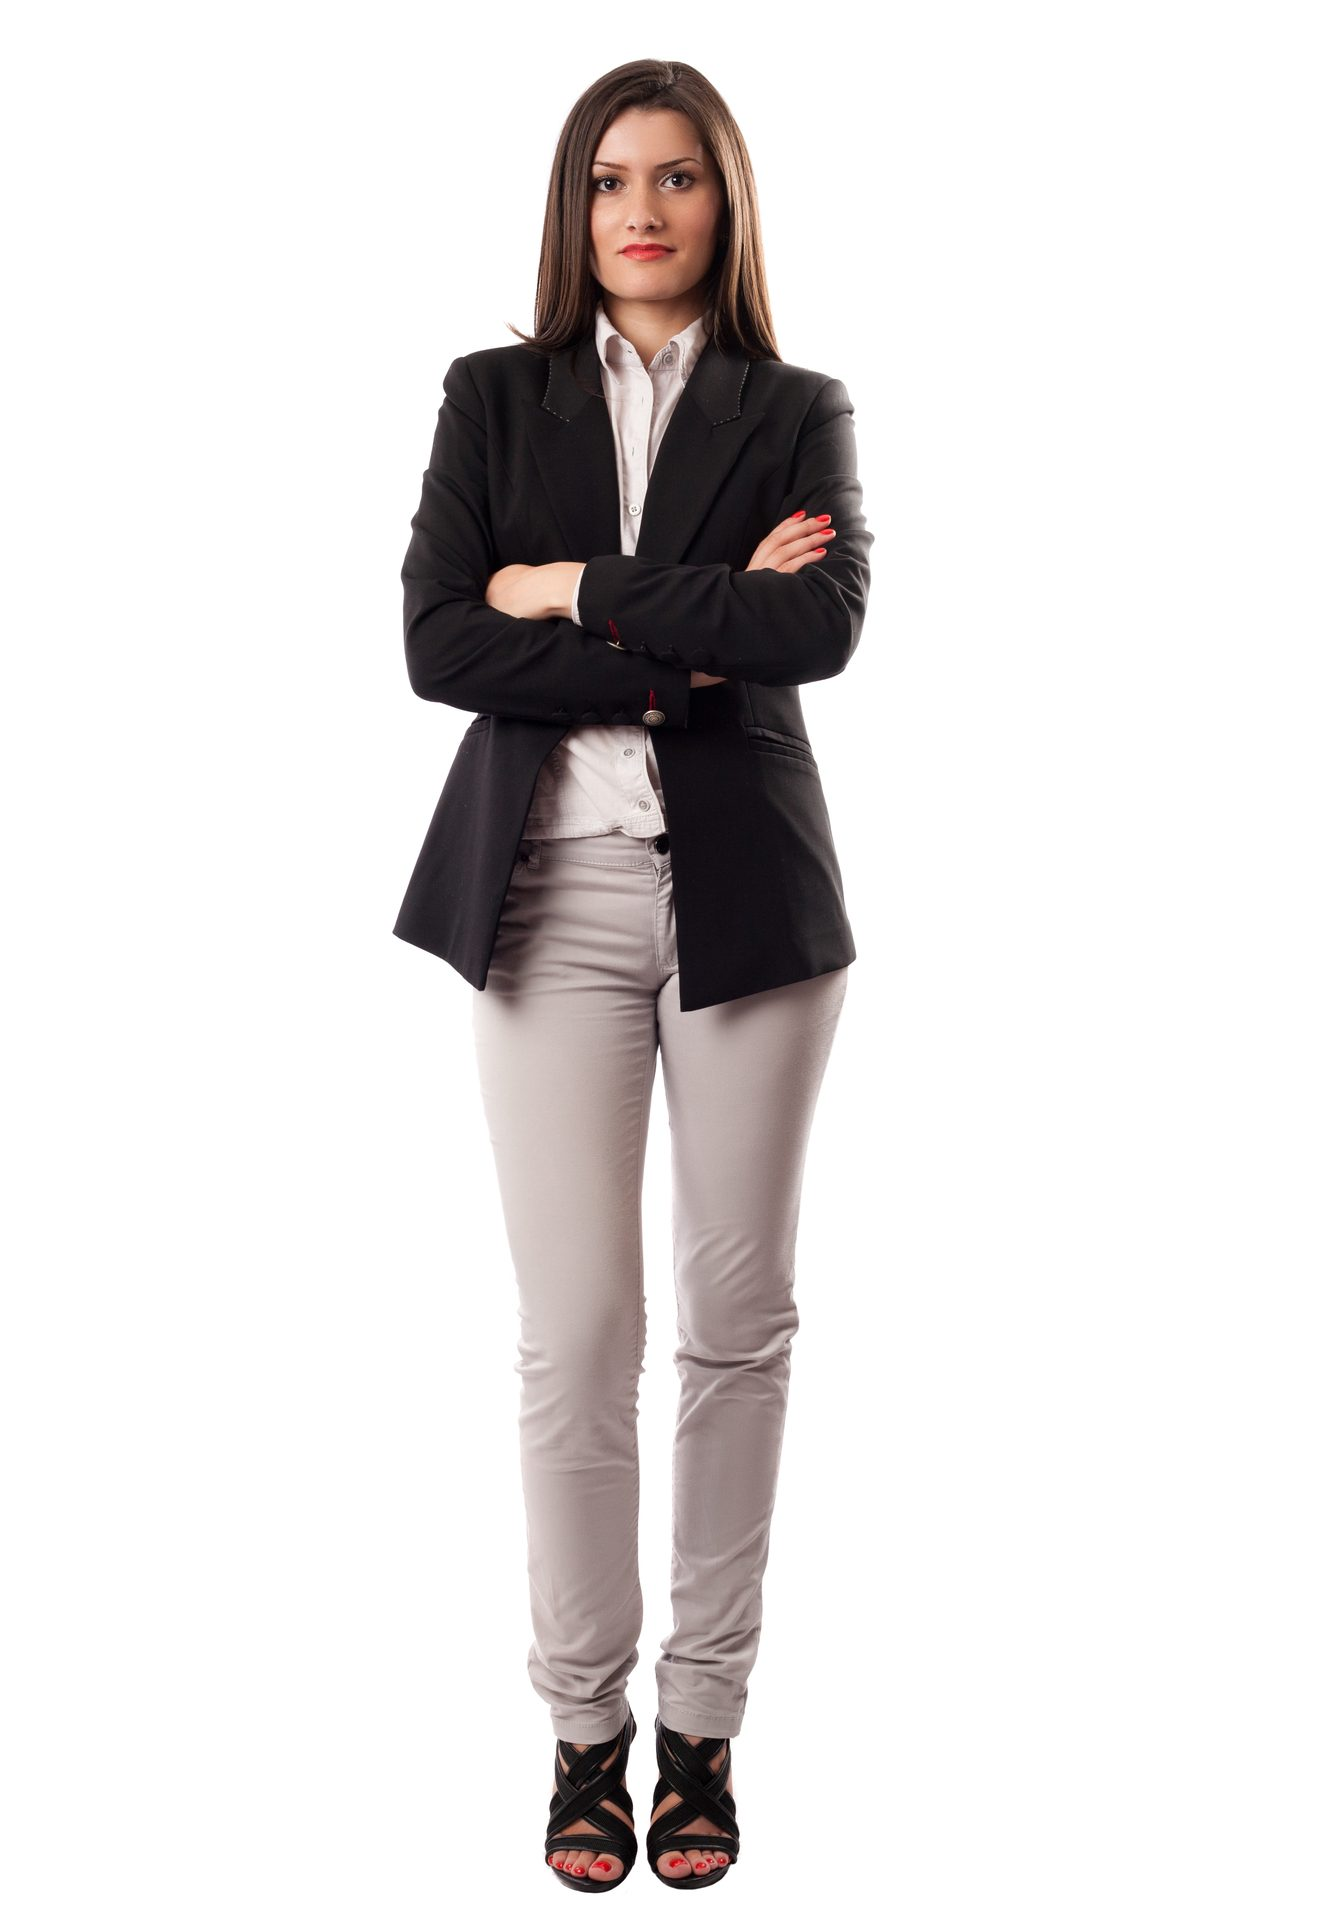 Confident business woman standing wearing casual clothes, isolated on white background